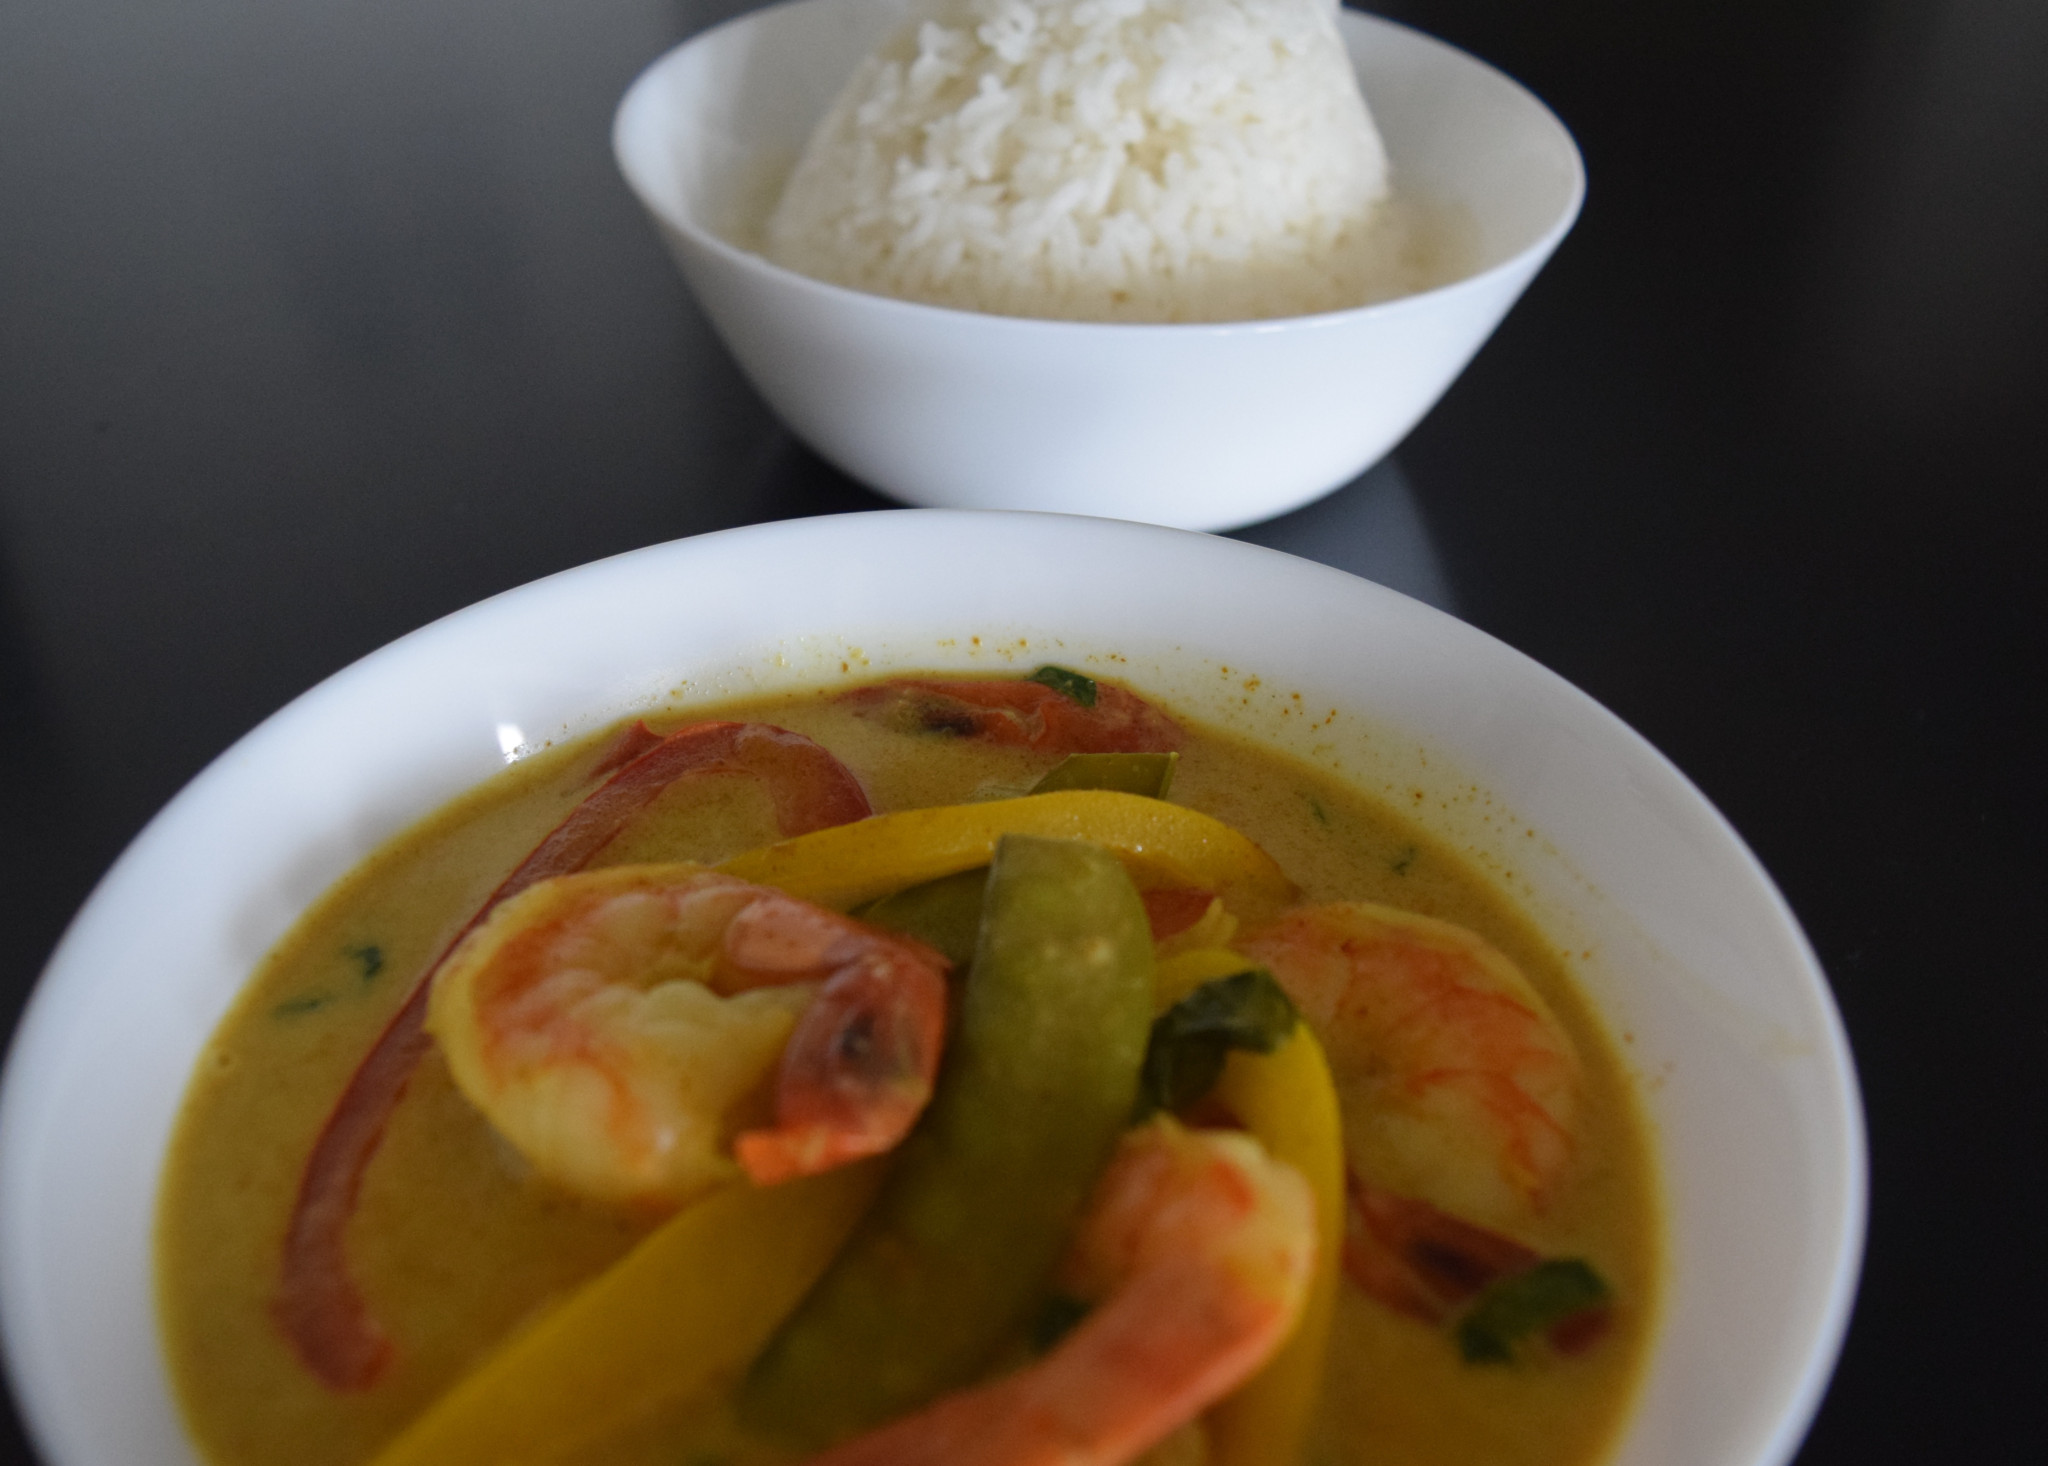 Recipe #3: My First Attempt at Red Curry.